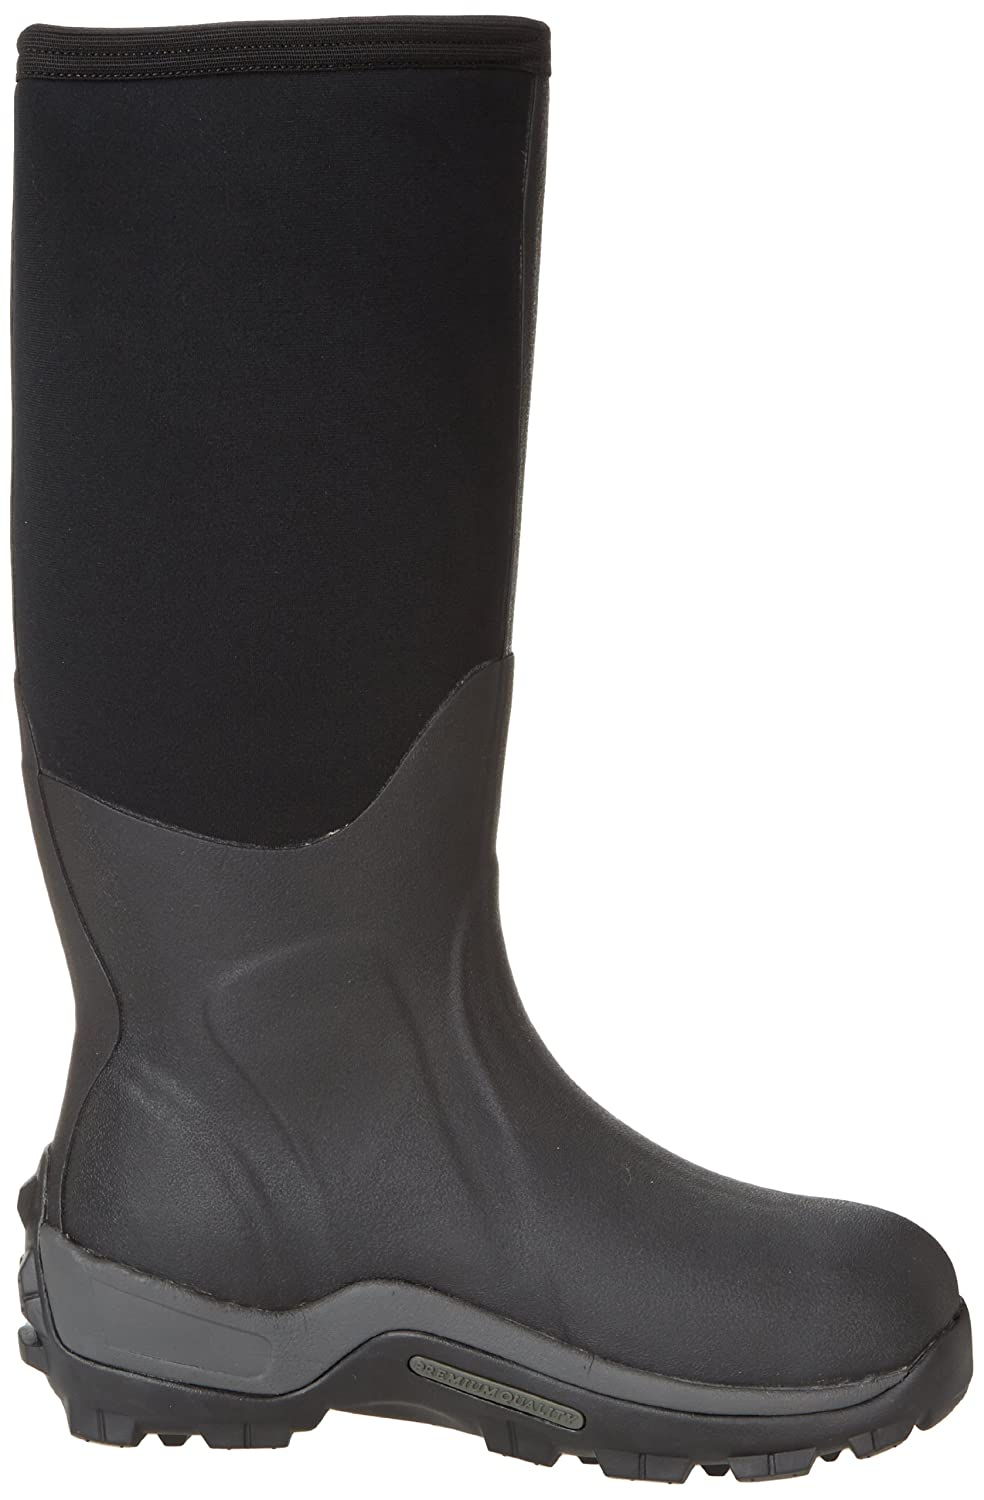 496ab759bd65 Muck Boot Company The Arctic Sport Extreme-Conditions Sport Boot   Amazon.ca  Shoes   Handbags